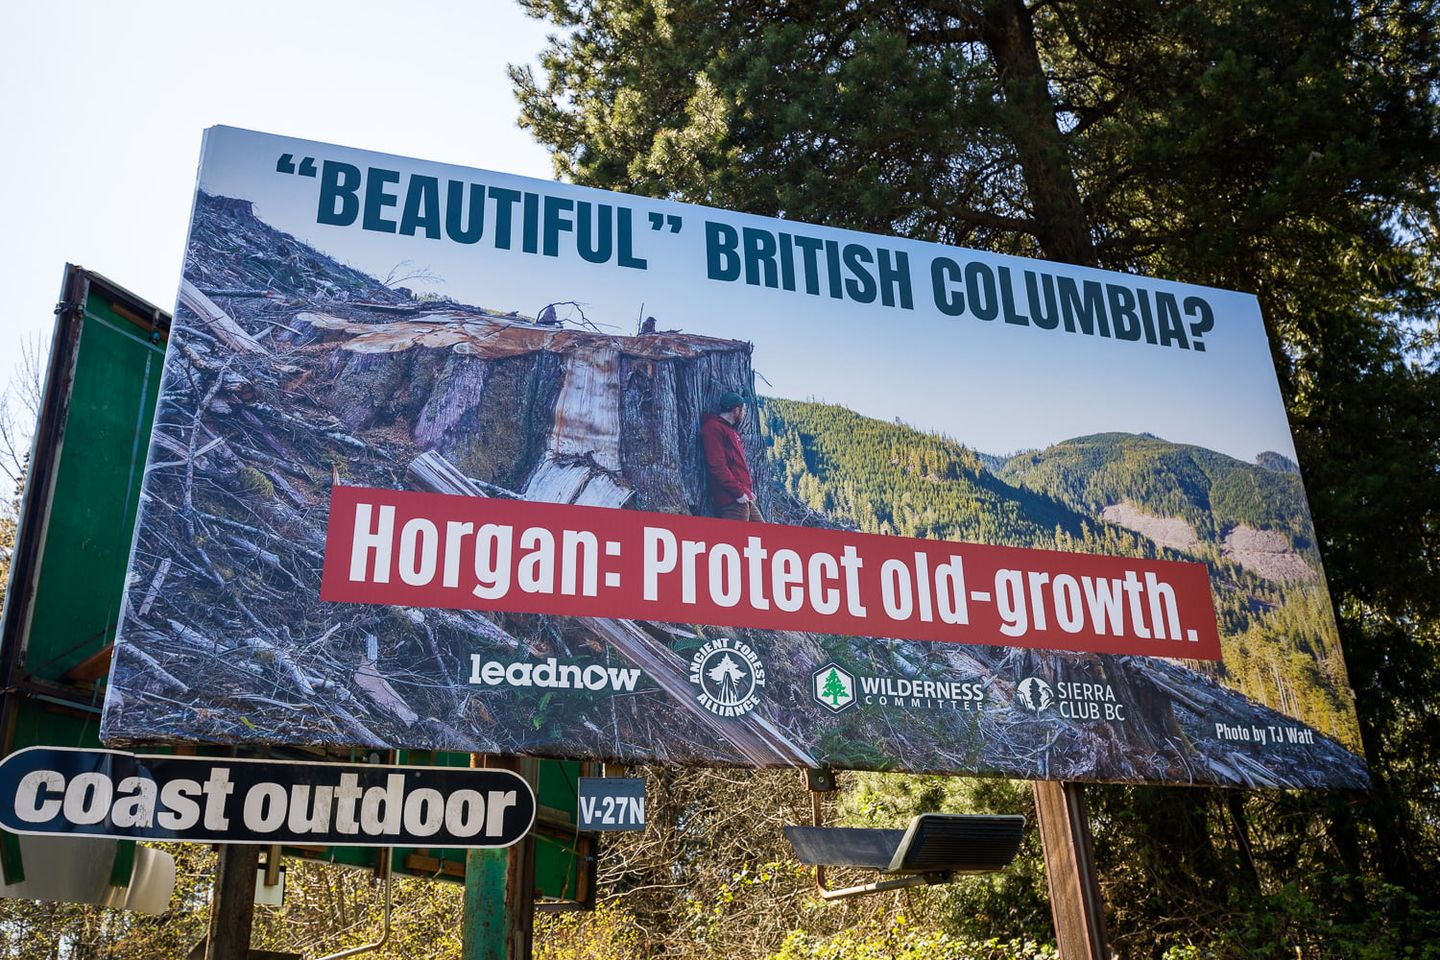 An image of the old growth billboard.